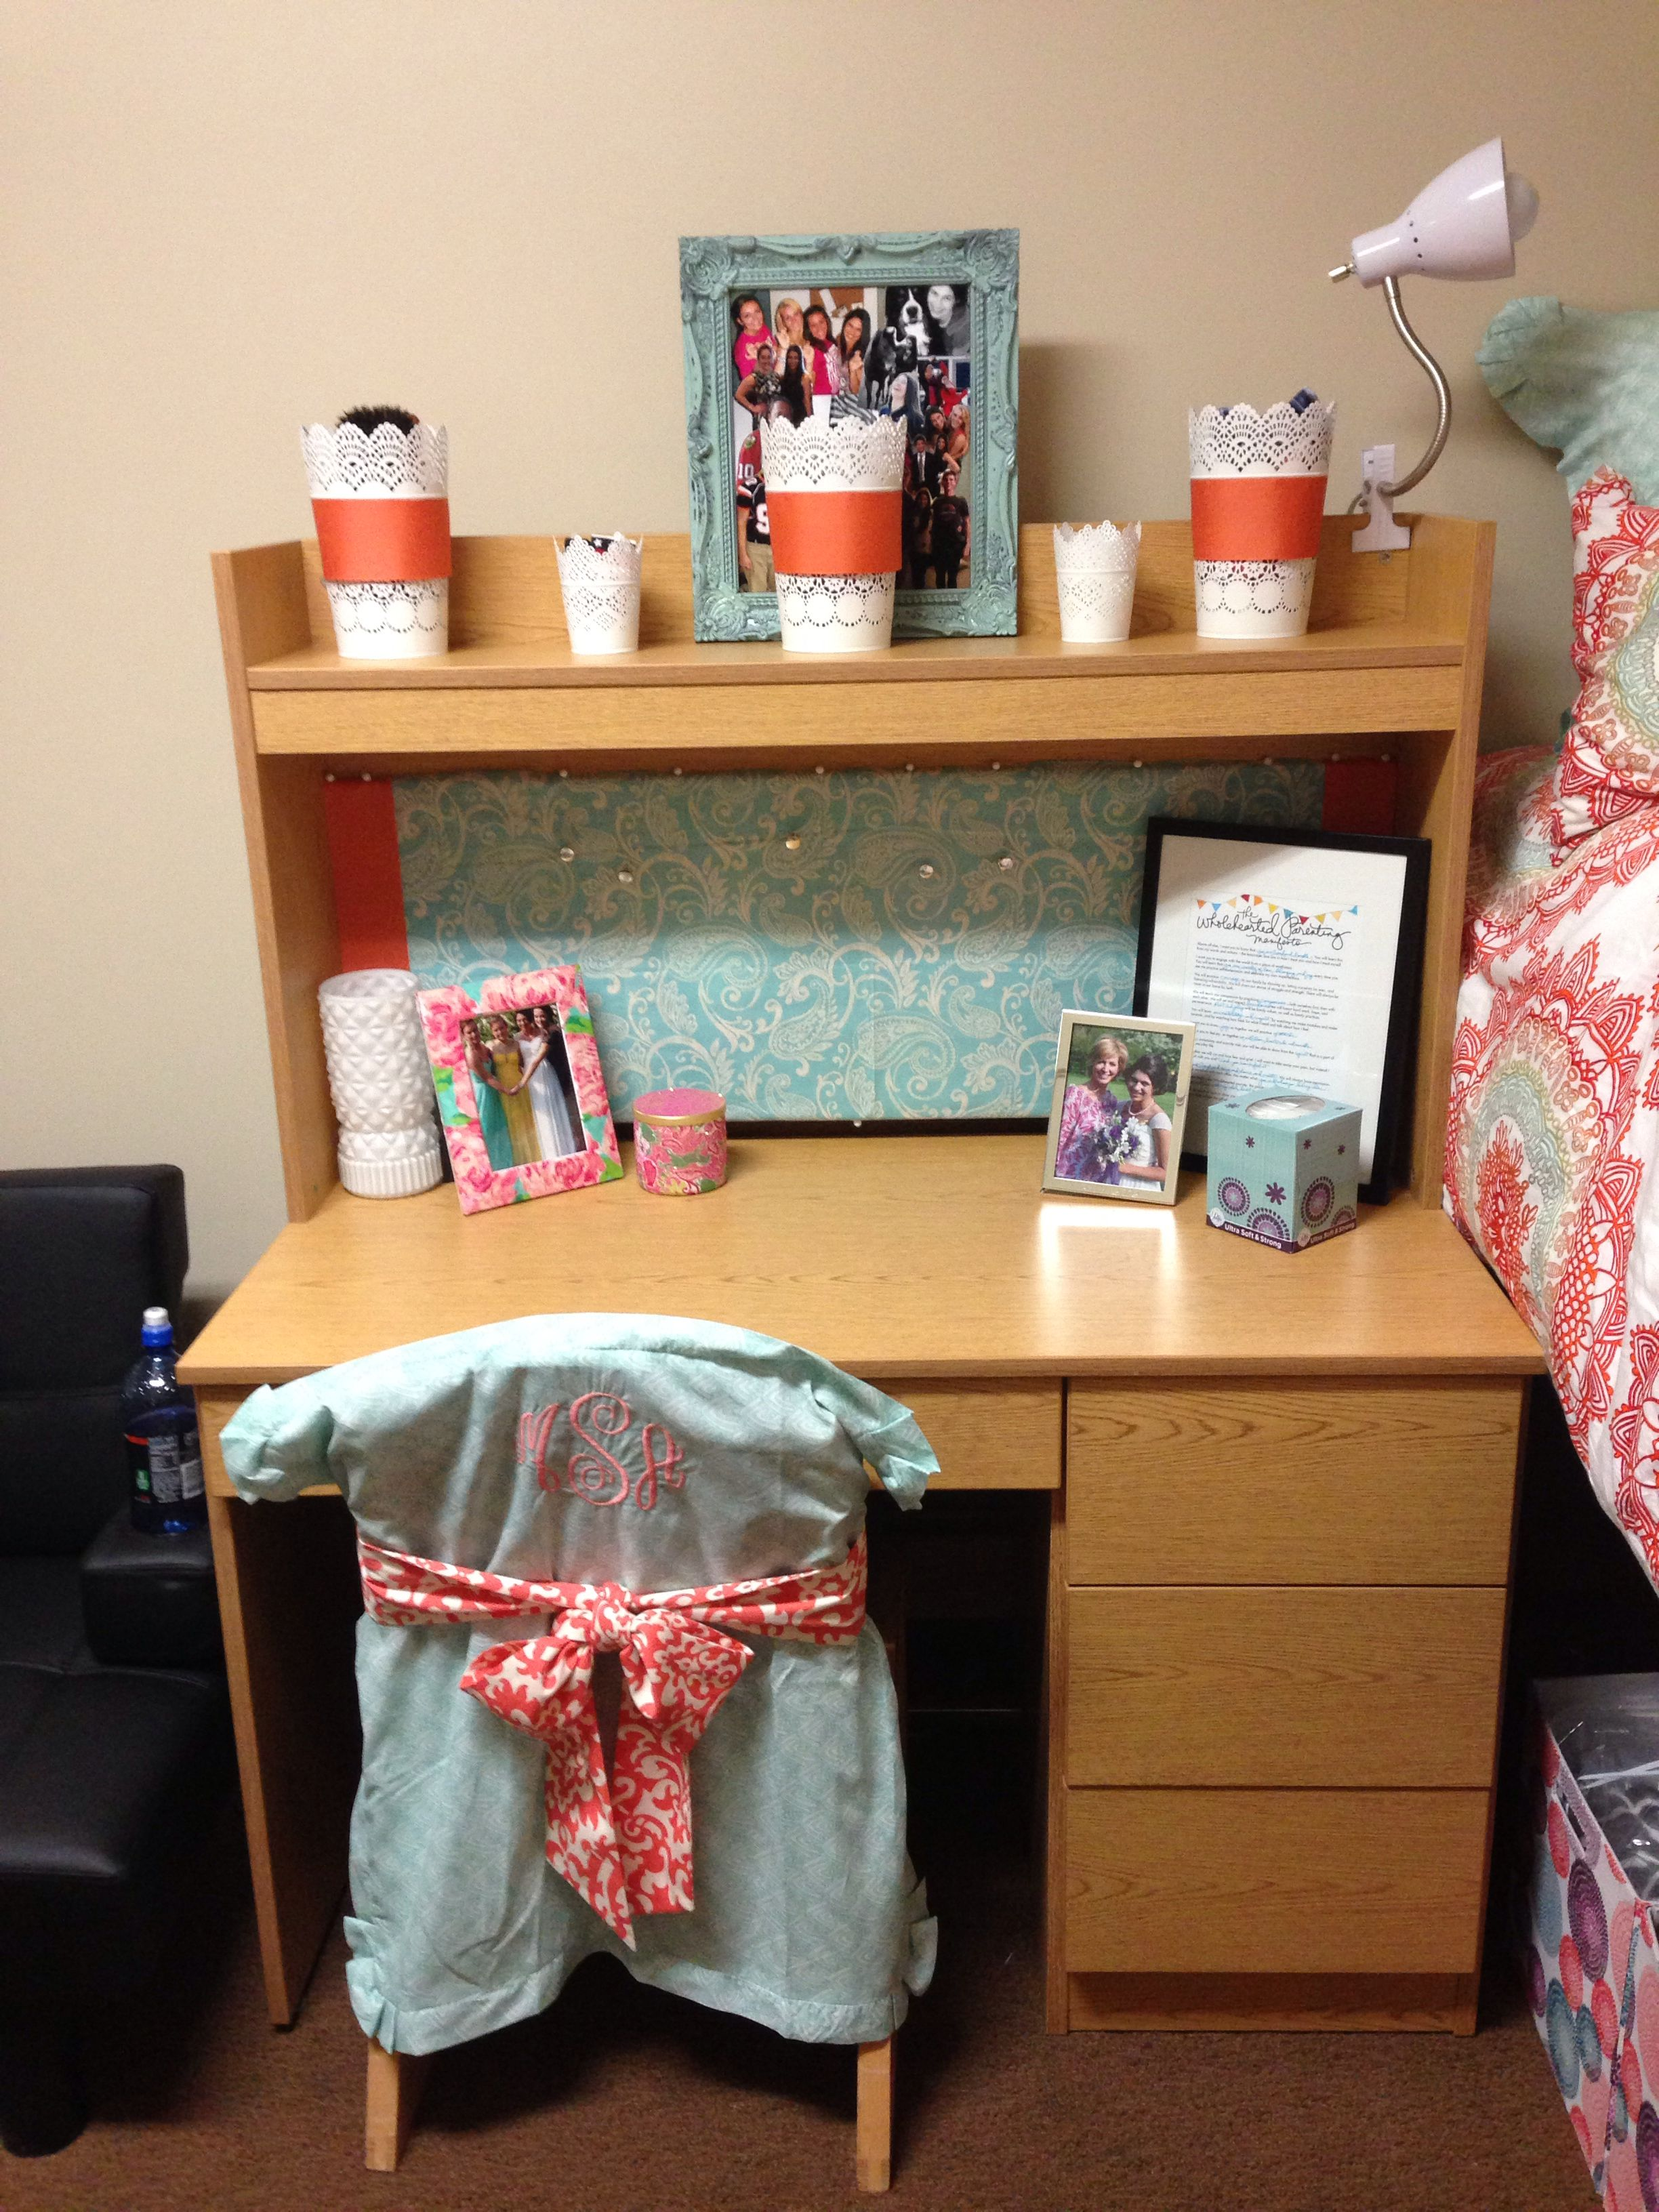 Dorm desk chairs - Find This Pin And More On Dorm Desk And Monogram Chair